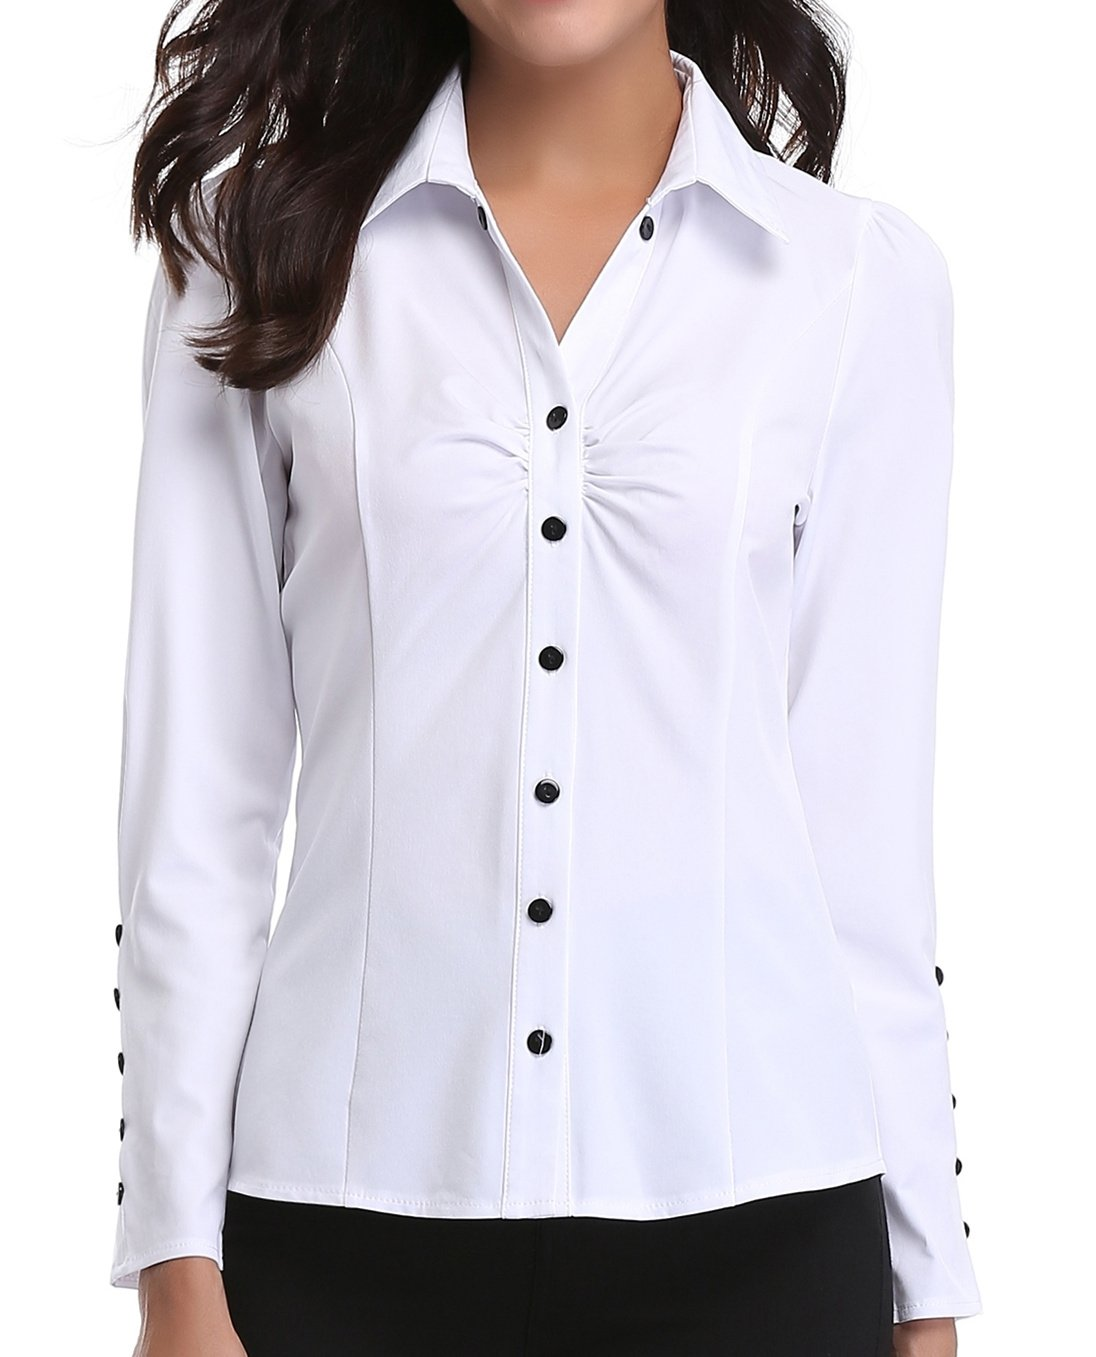 MISS MOLY Women's White Button Down Shirt V Neck Collar Puff Sleeve Office M by MISS MOLY (Image #2)